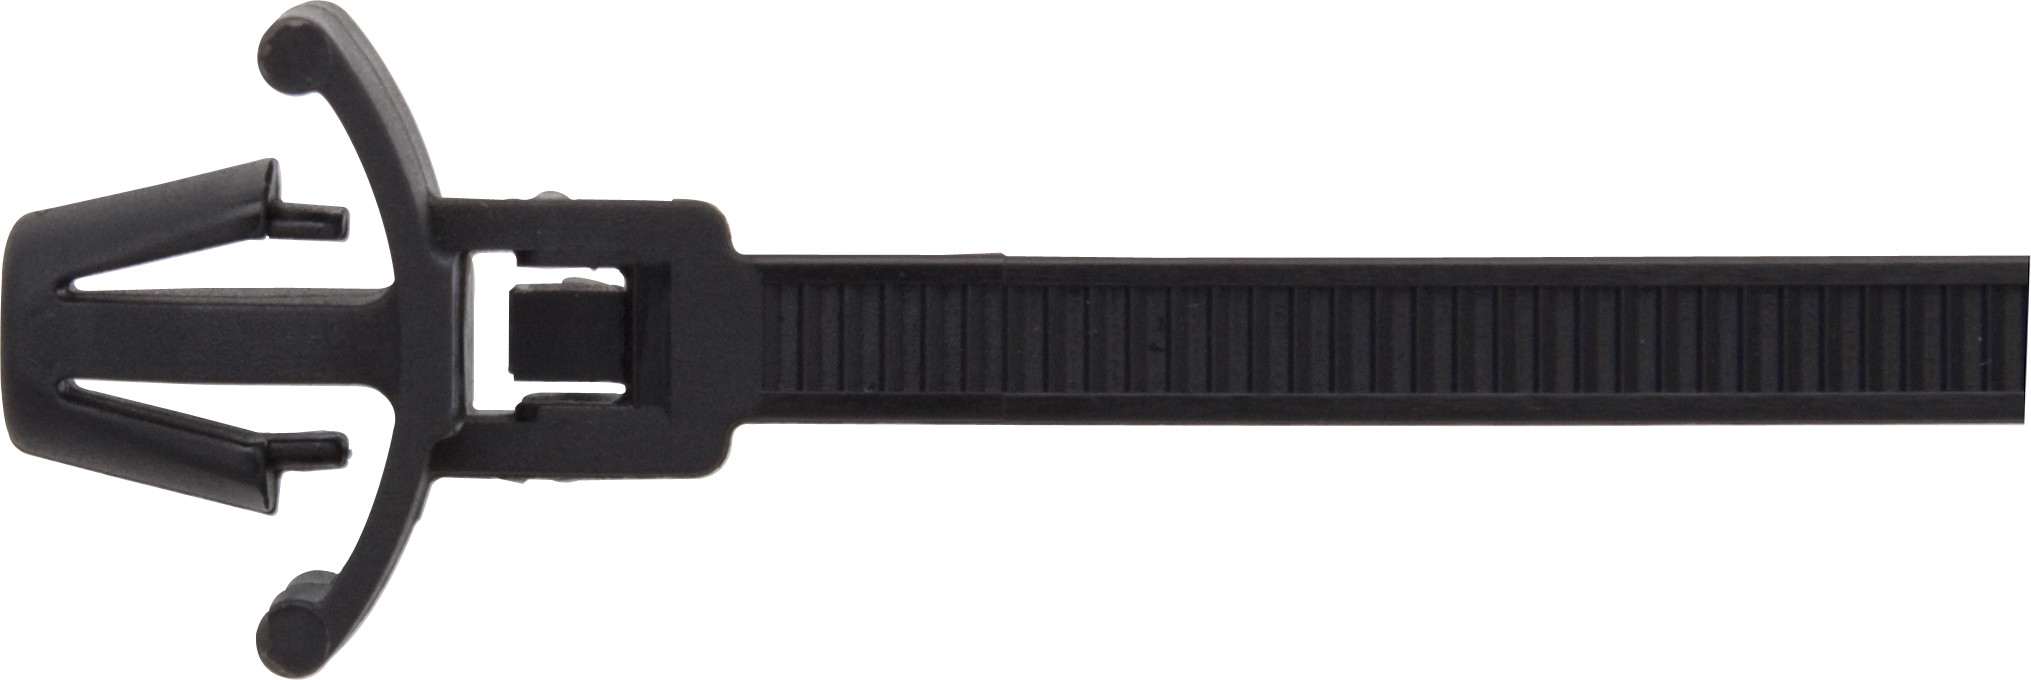 HELLERMAN TYTTON CABLE TIES 215MM x 4.6MM (50) BLACK RELEASABLE